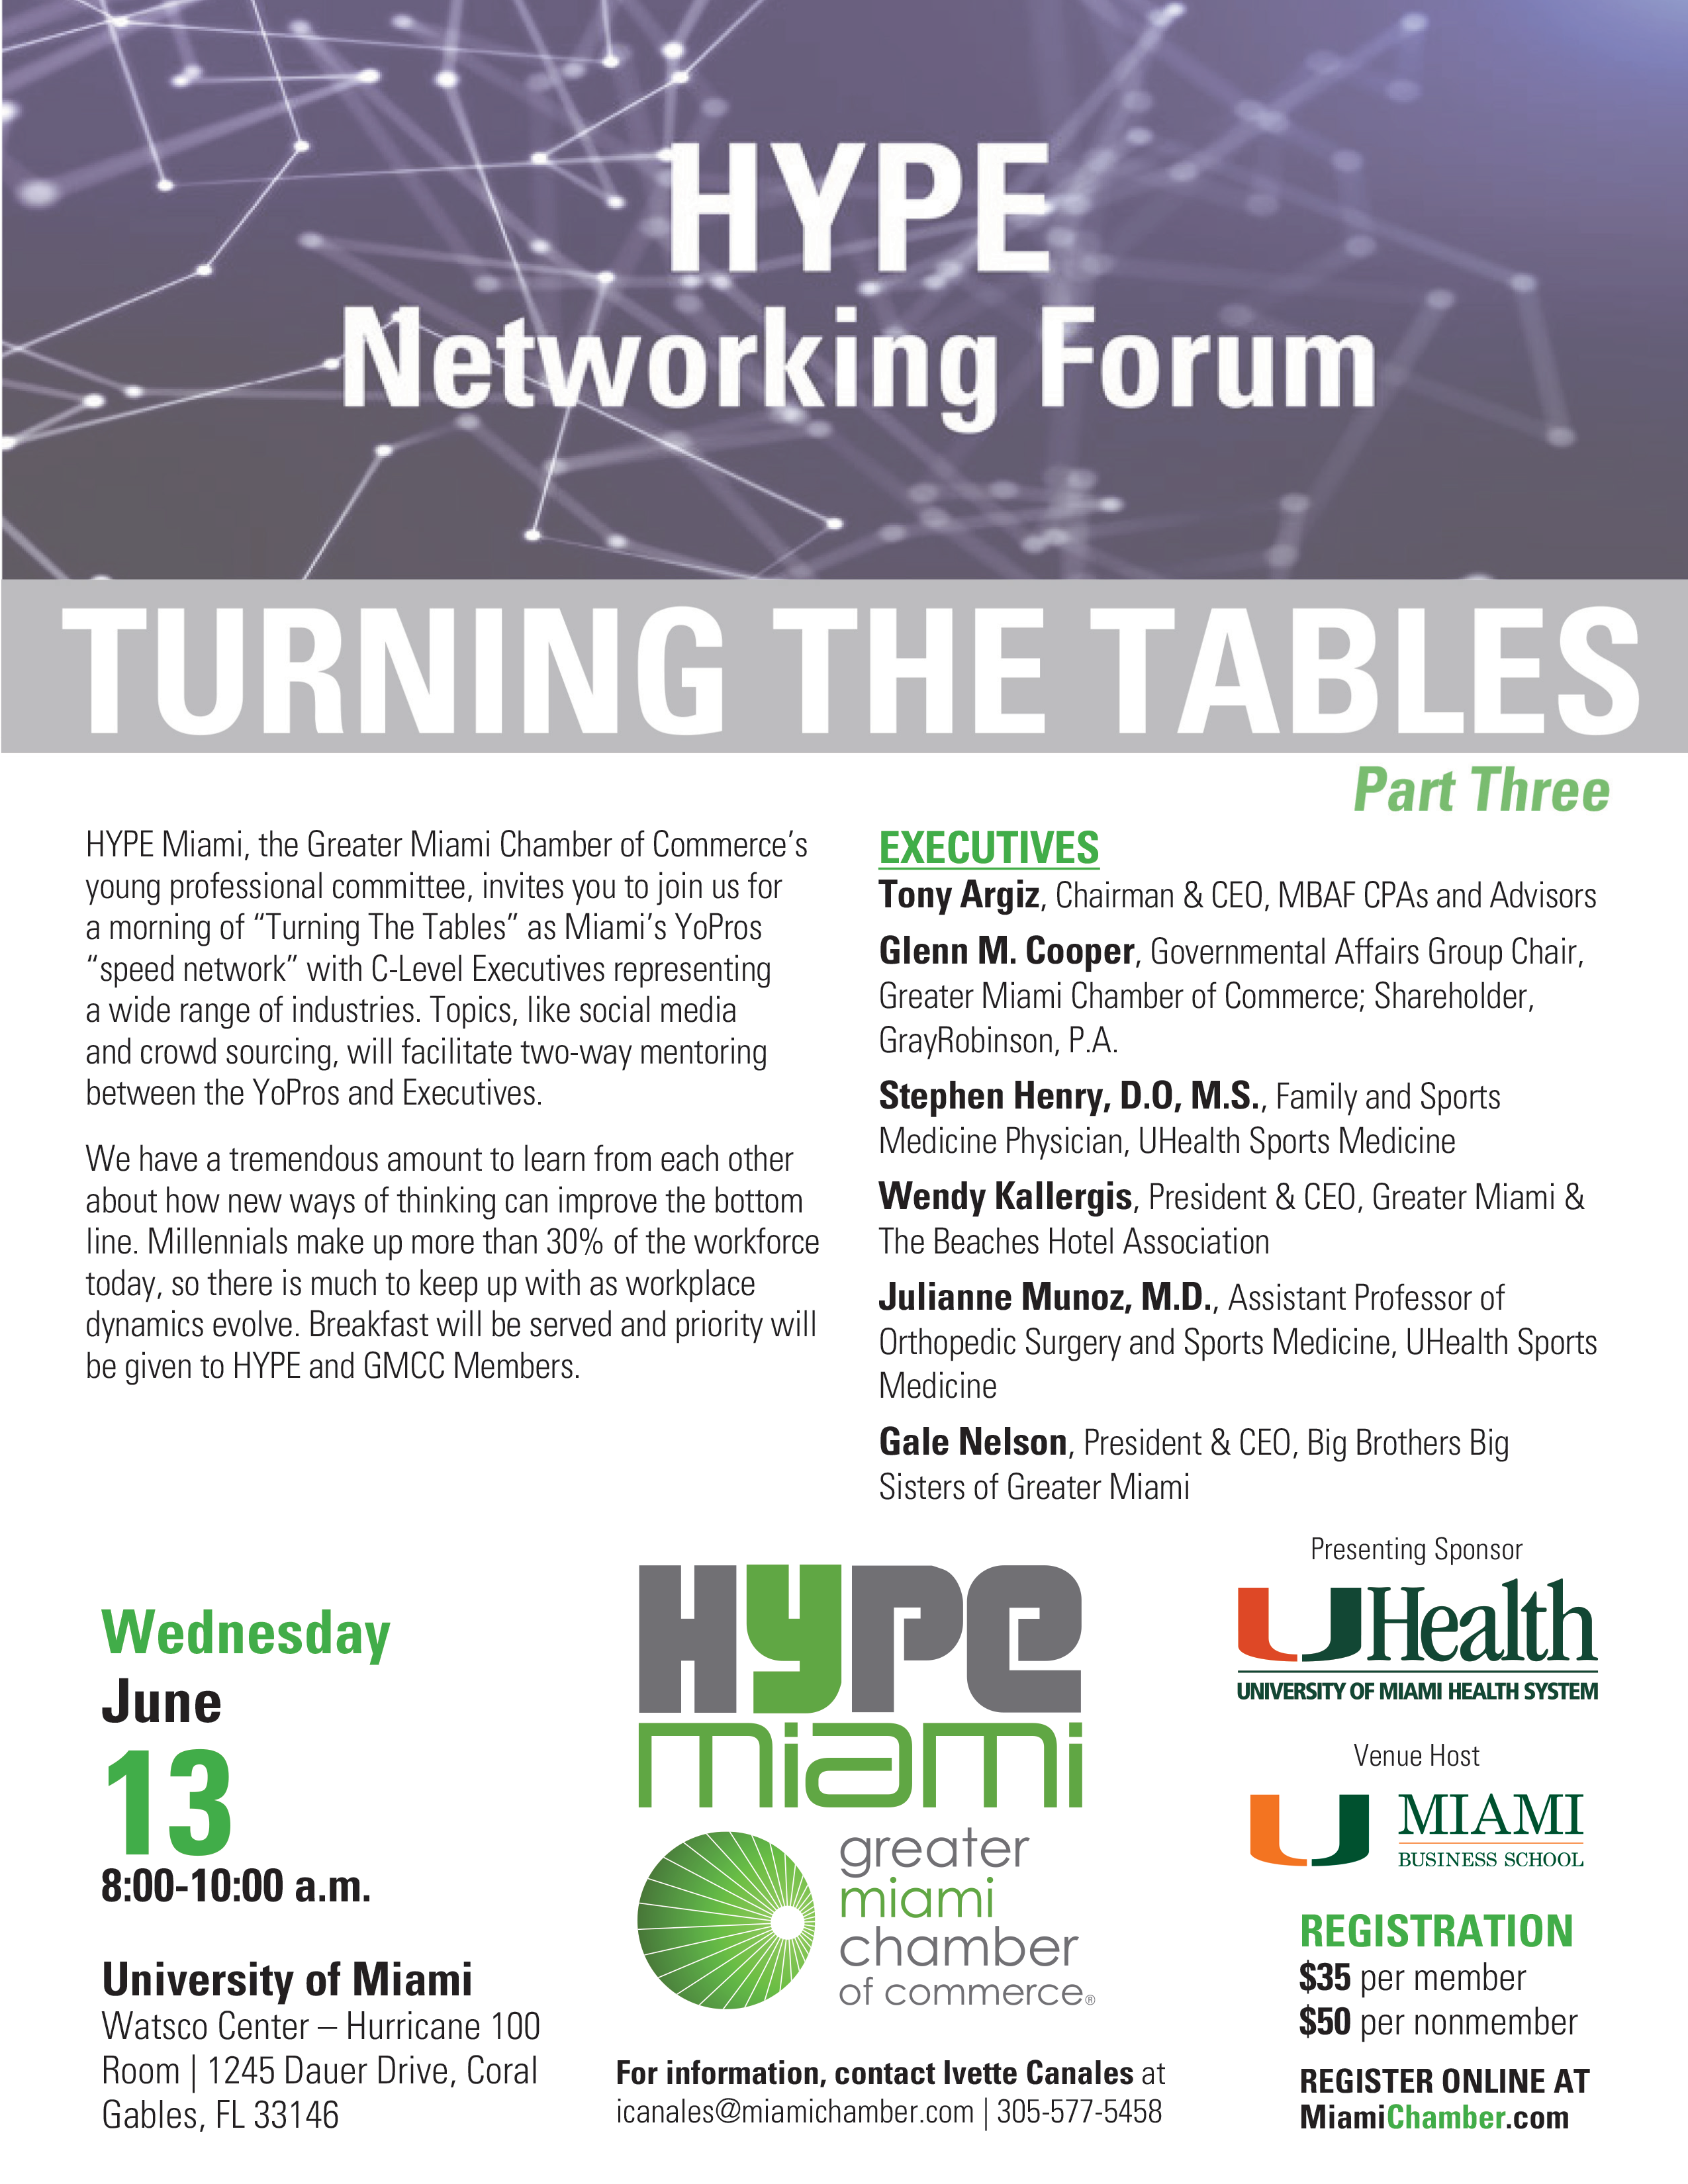 HYPE Miami: Turning The Tables Part 3